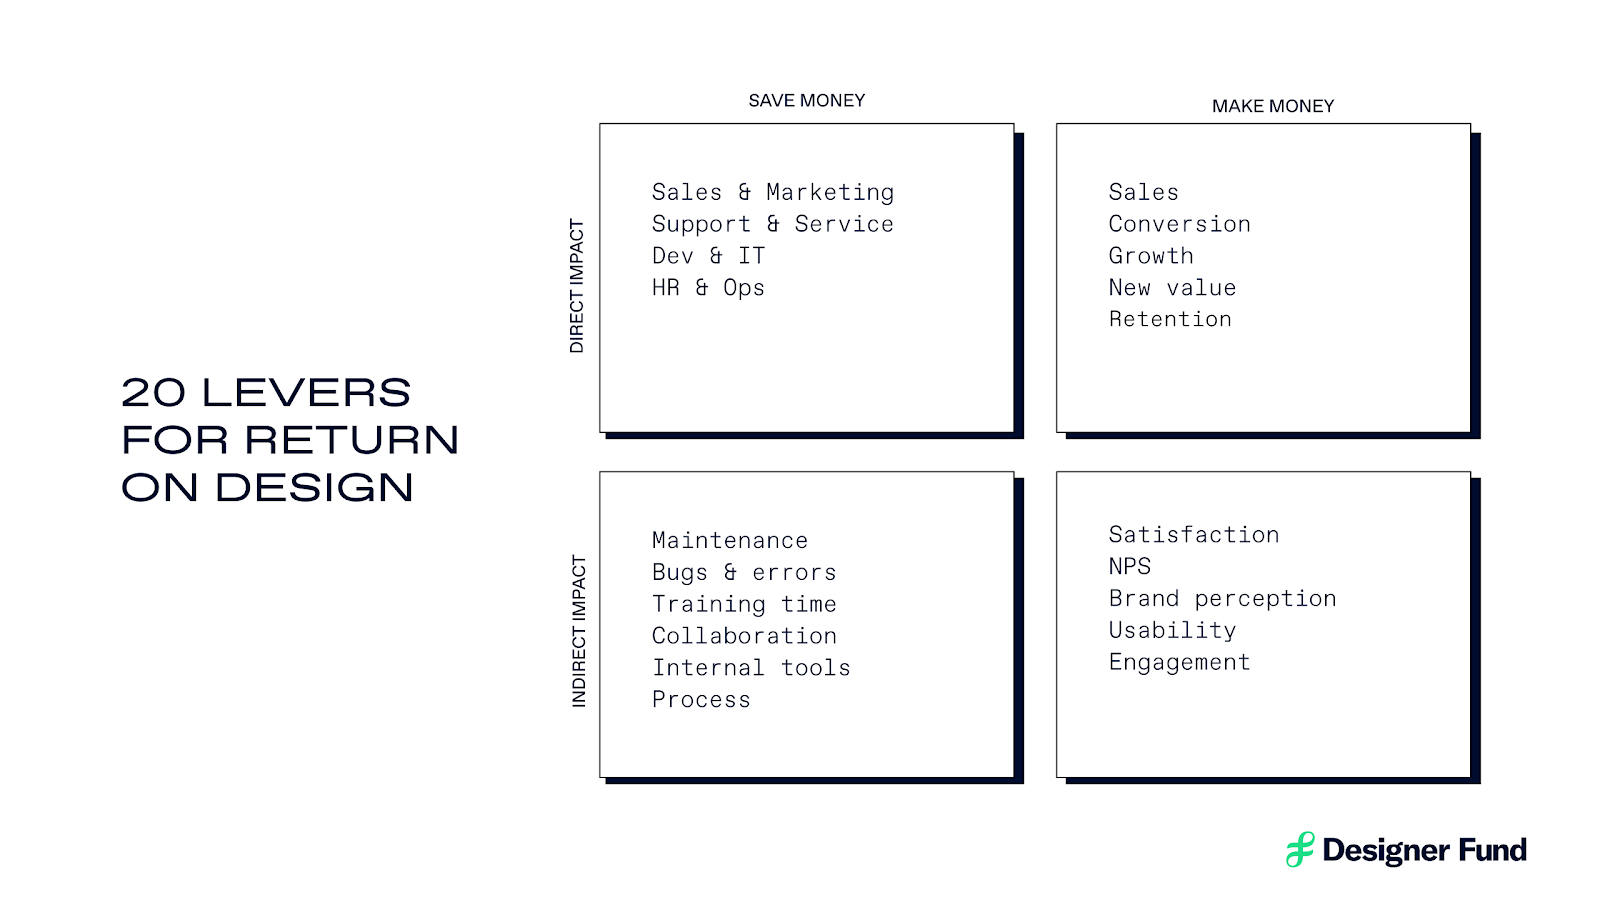 The 20 levers for Return on Design framework illustrates direct and indirect levers for communicating the value of design that fall under organizational outcomes of saving and making money.